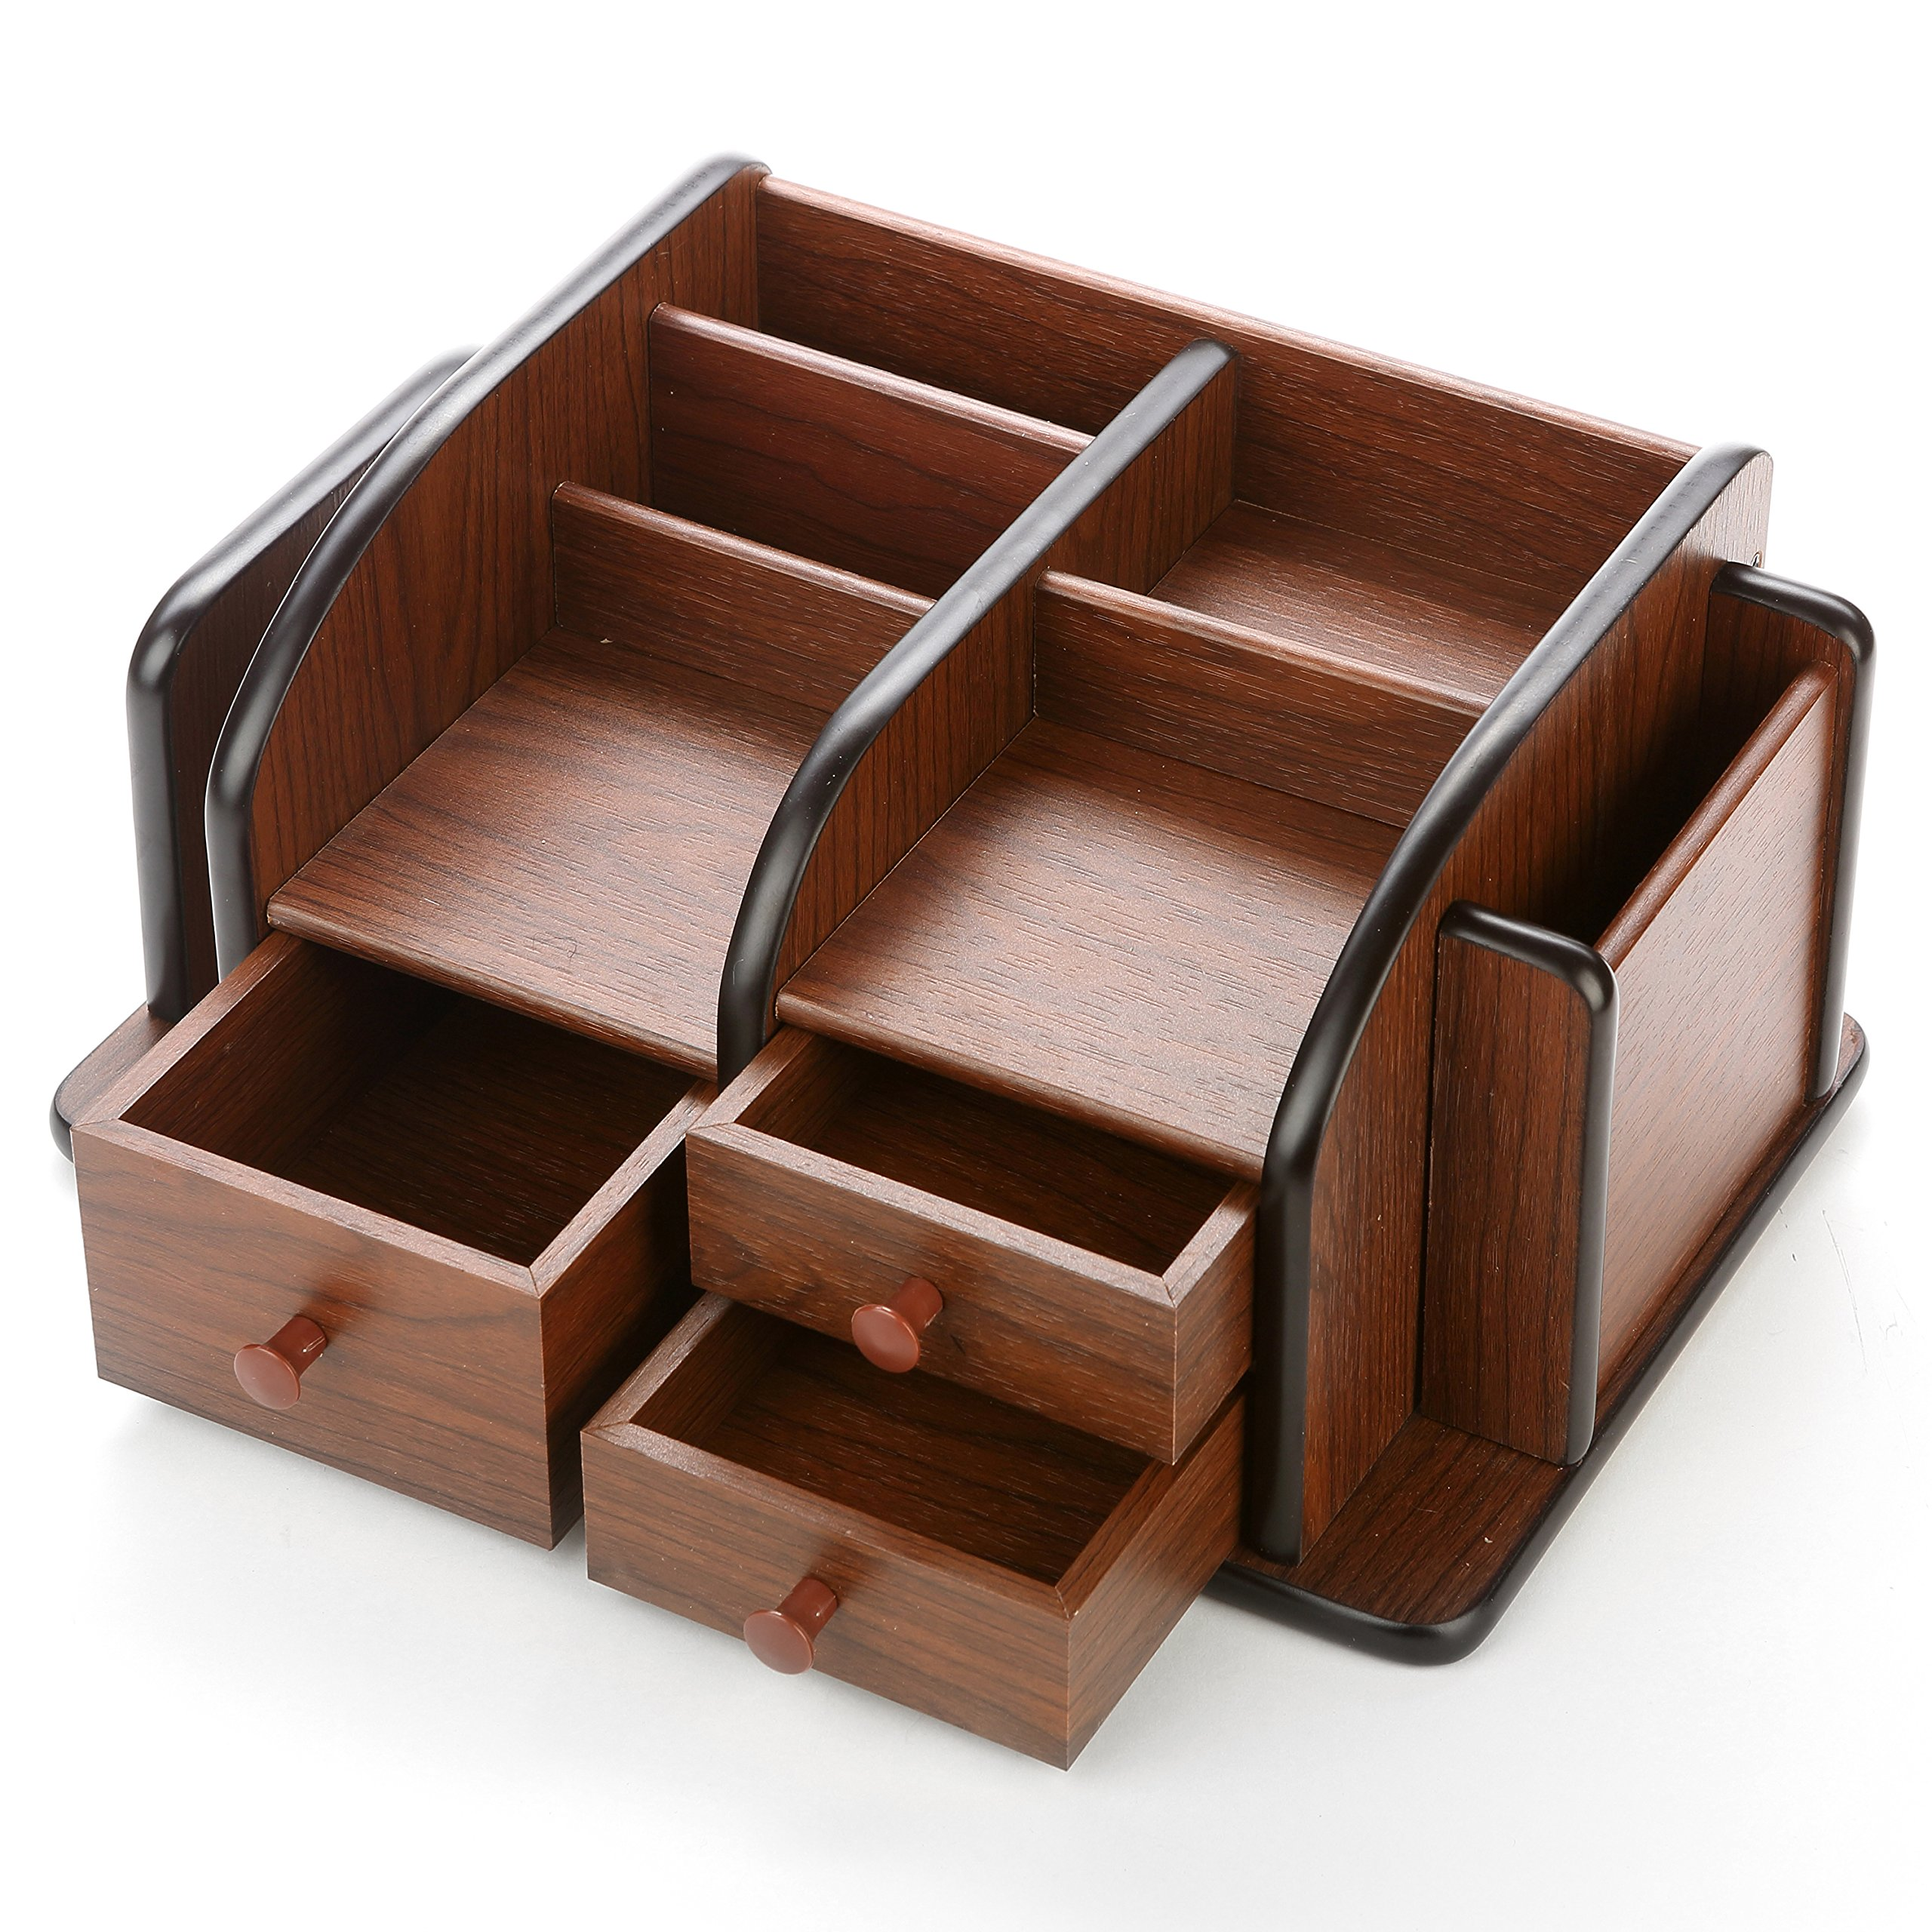 MyGift Classic Brown Wood Office Supplies Desk Organizer Rack with 3 Drawers, 3 Compartments & 2 Shelves